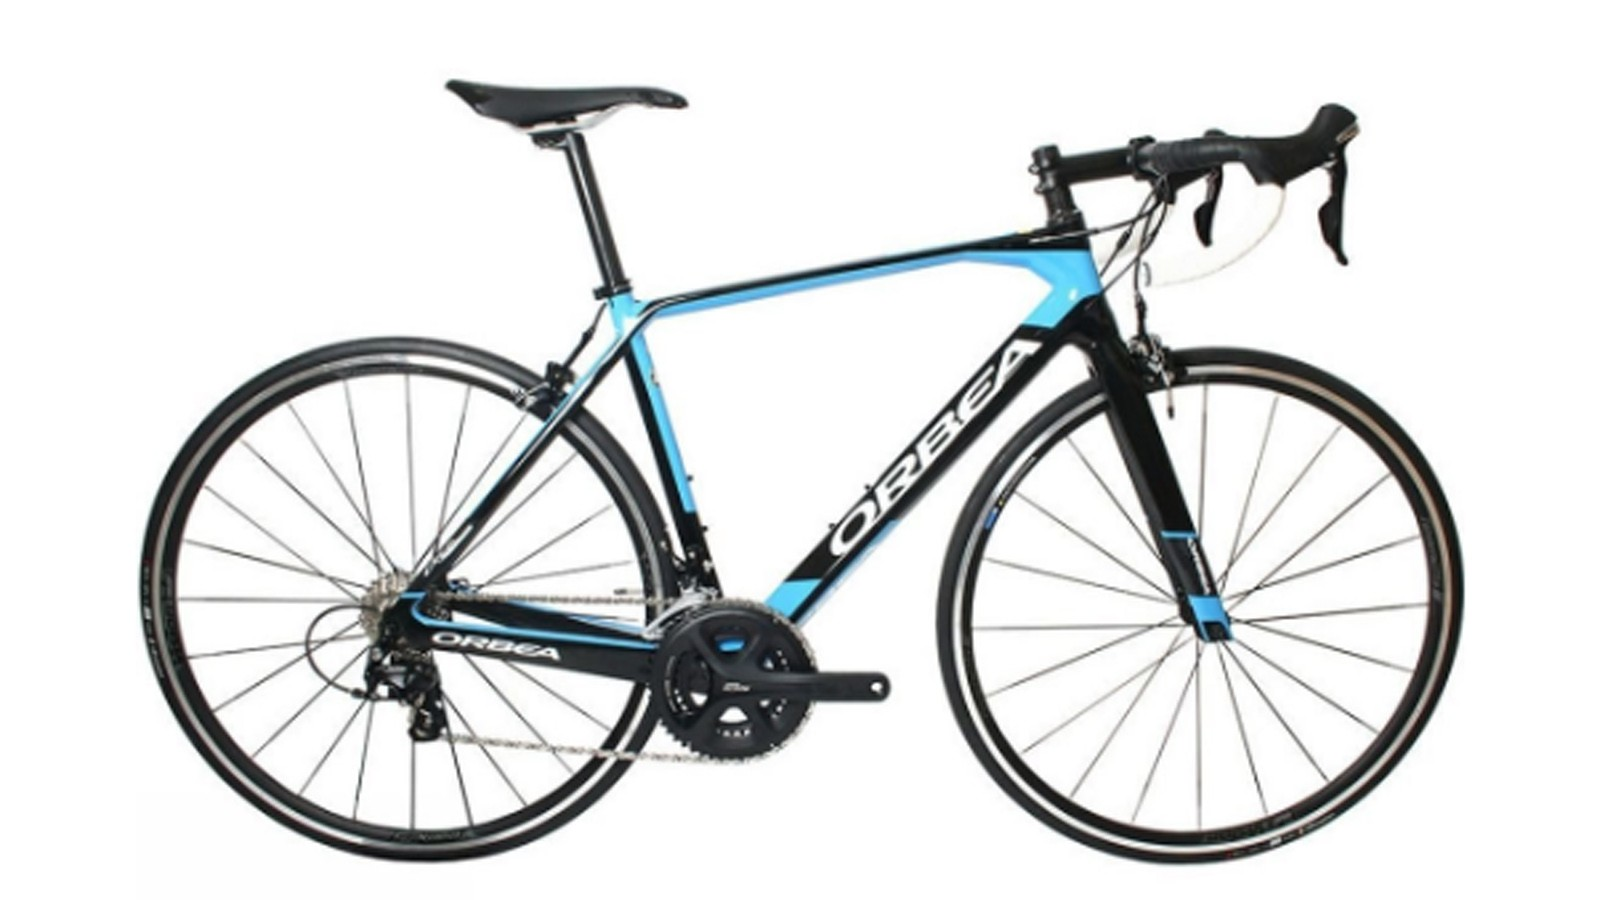 Not a bad price for a carbon framed road bike